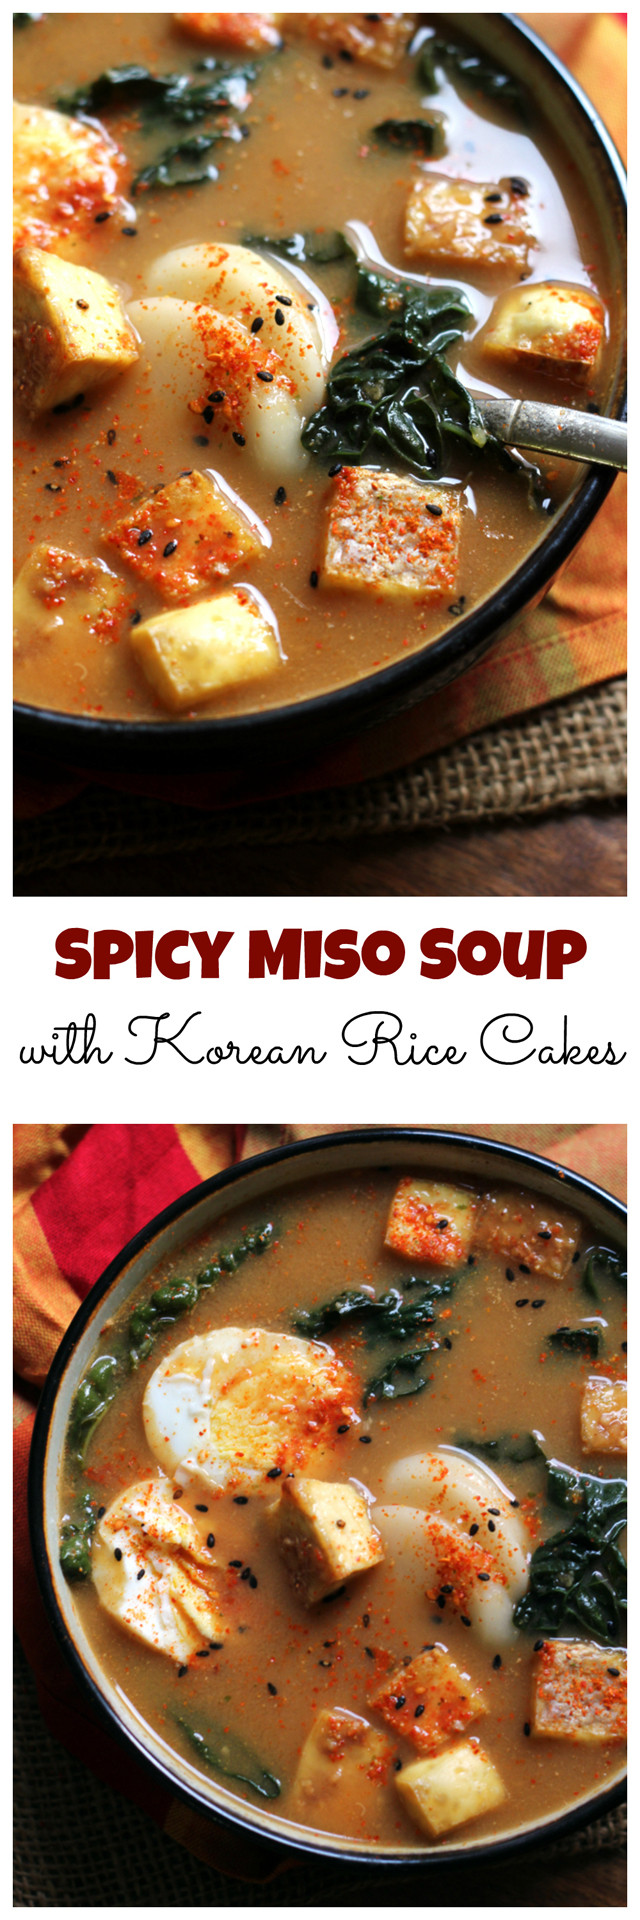 Spicy Miso Soup with Korean Rice Cakes